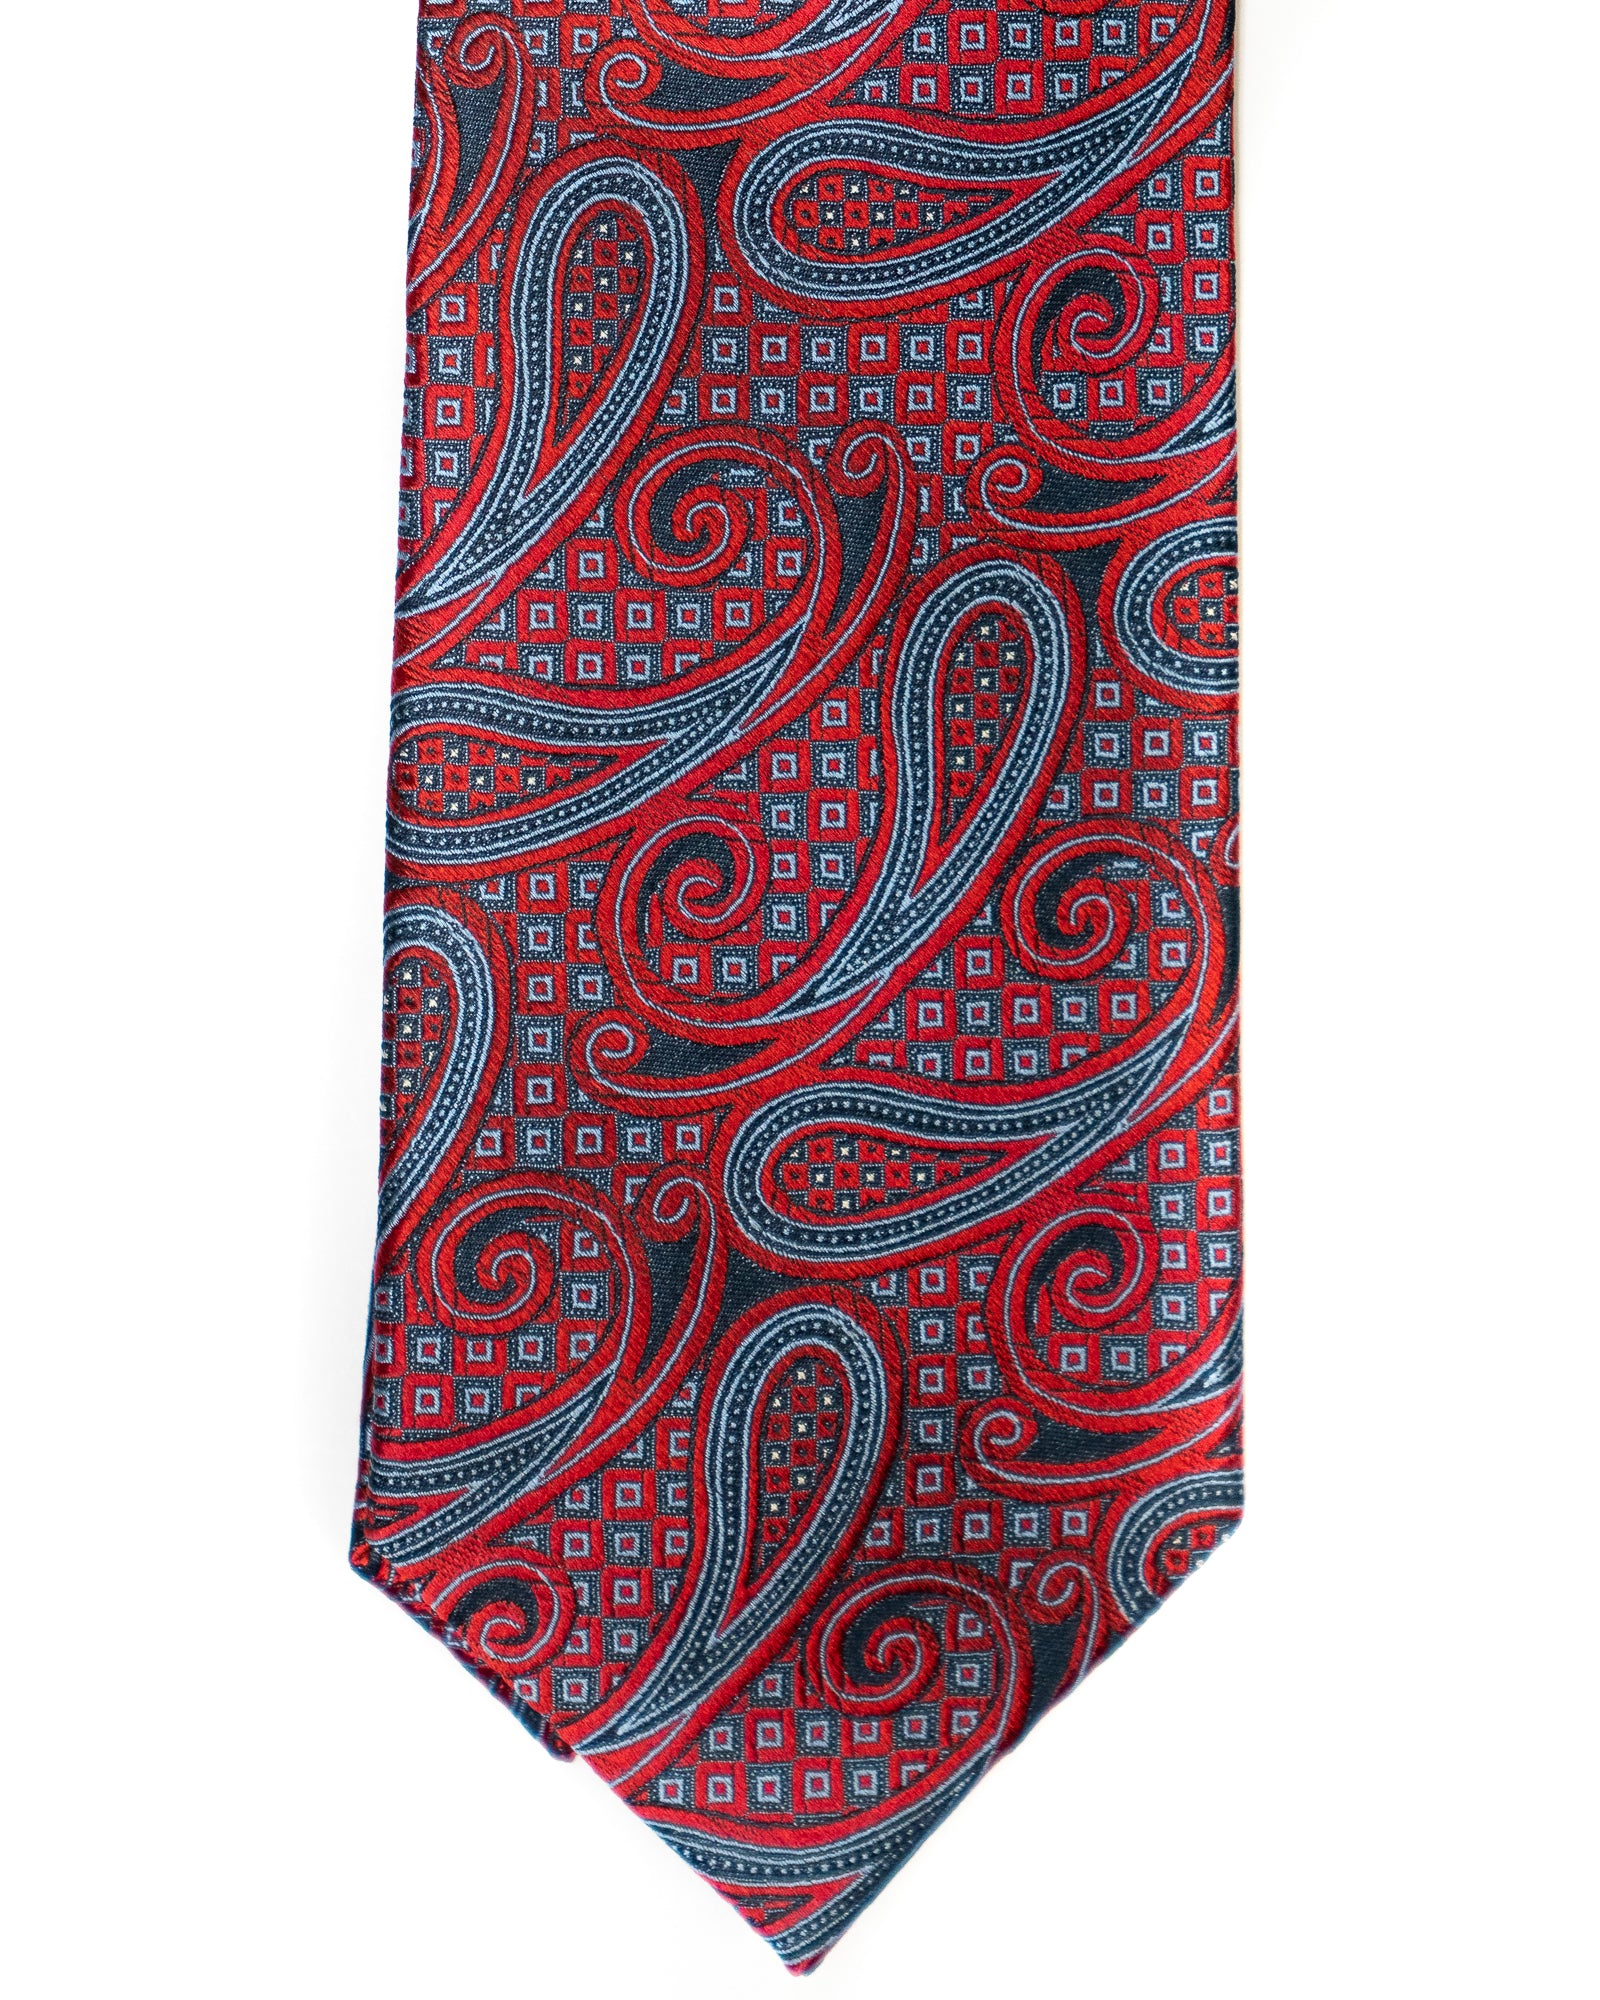 Paisley Silk Tie in Red With Navy - Rainwater's Men's Clothing and Tuxedo Rental